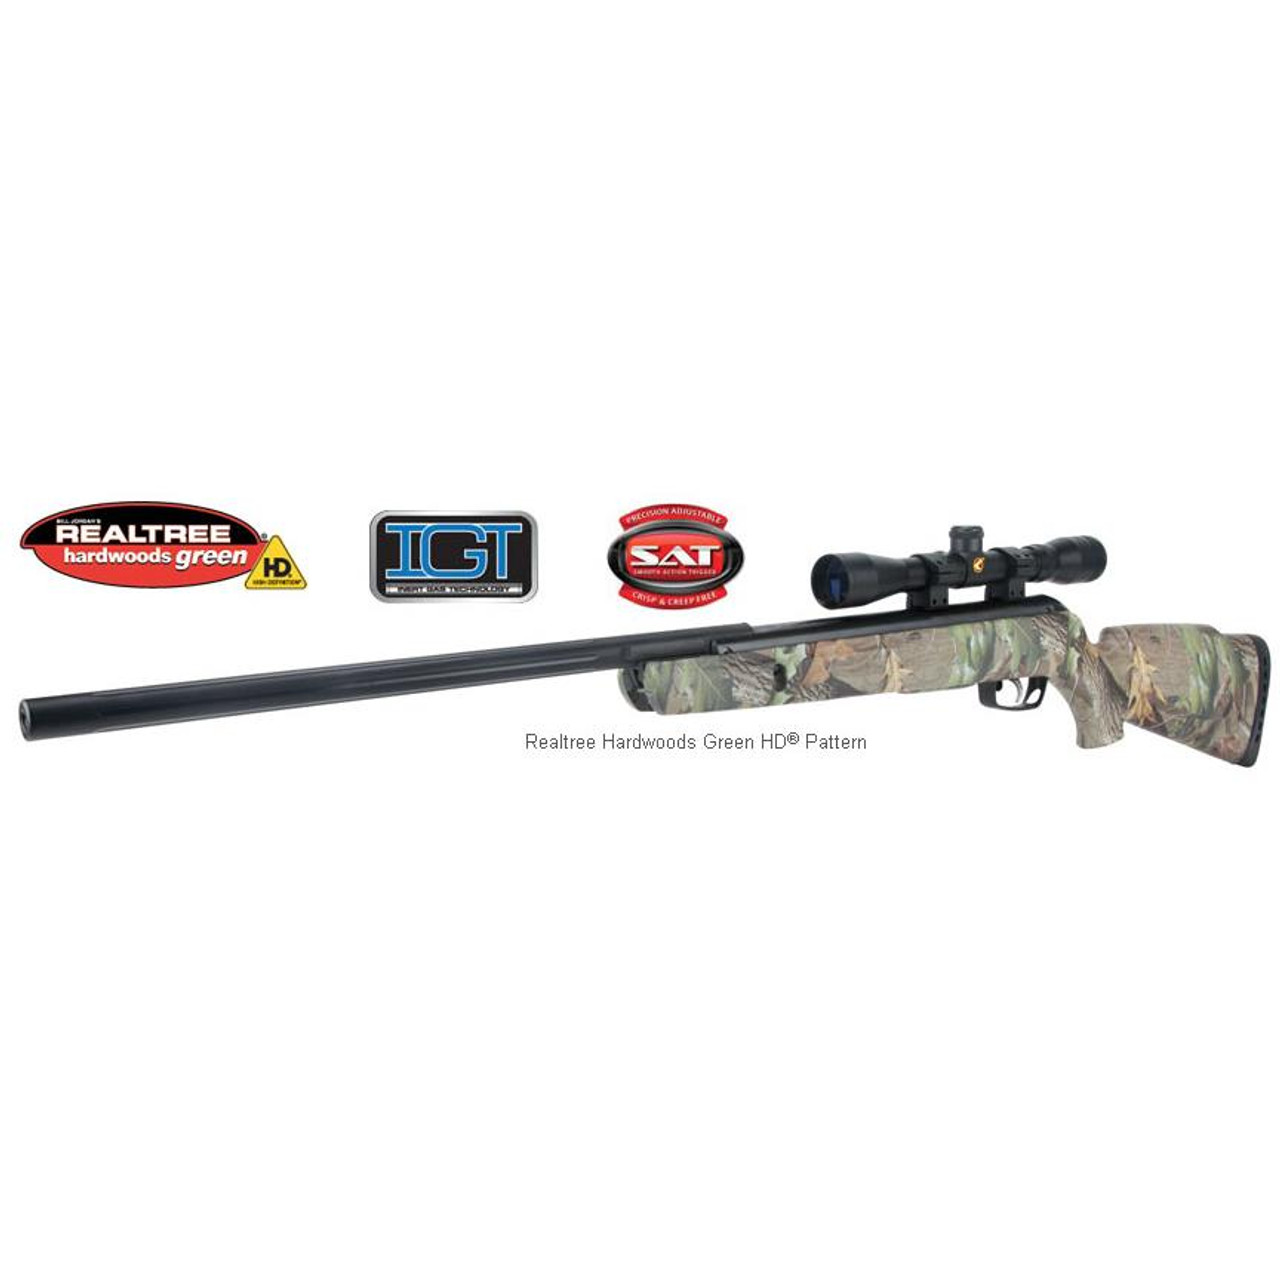 Gamo CAMO Rocket IGT  177 Caliber Air Rifle / 4X32 Air Rifle Scope  #61100482154